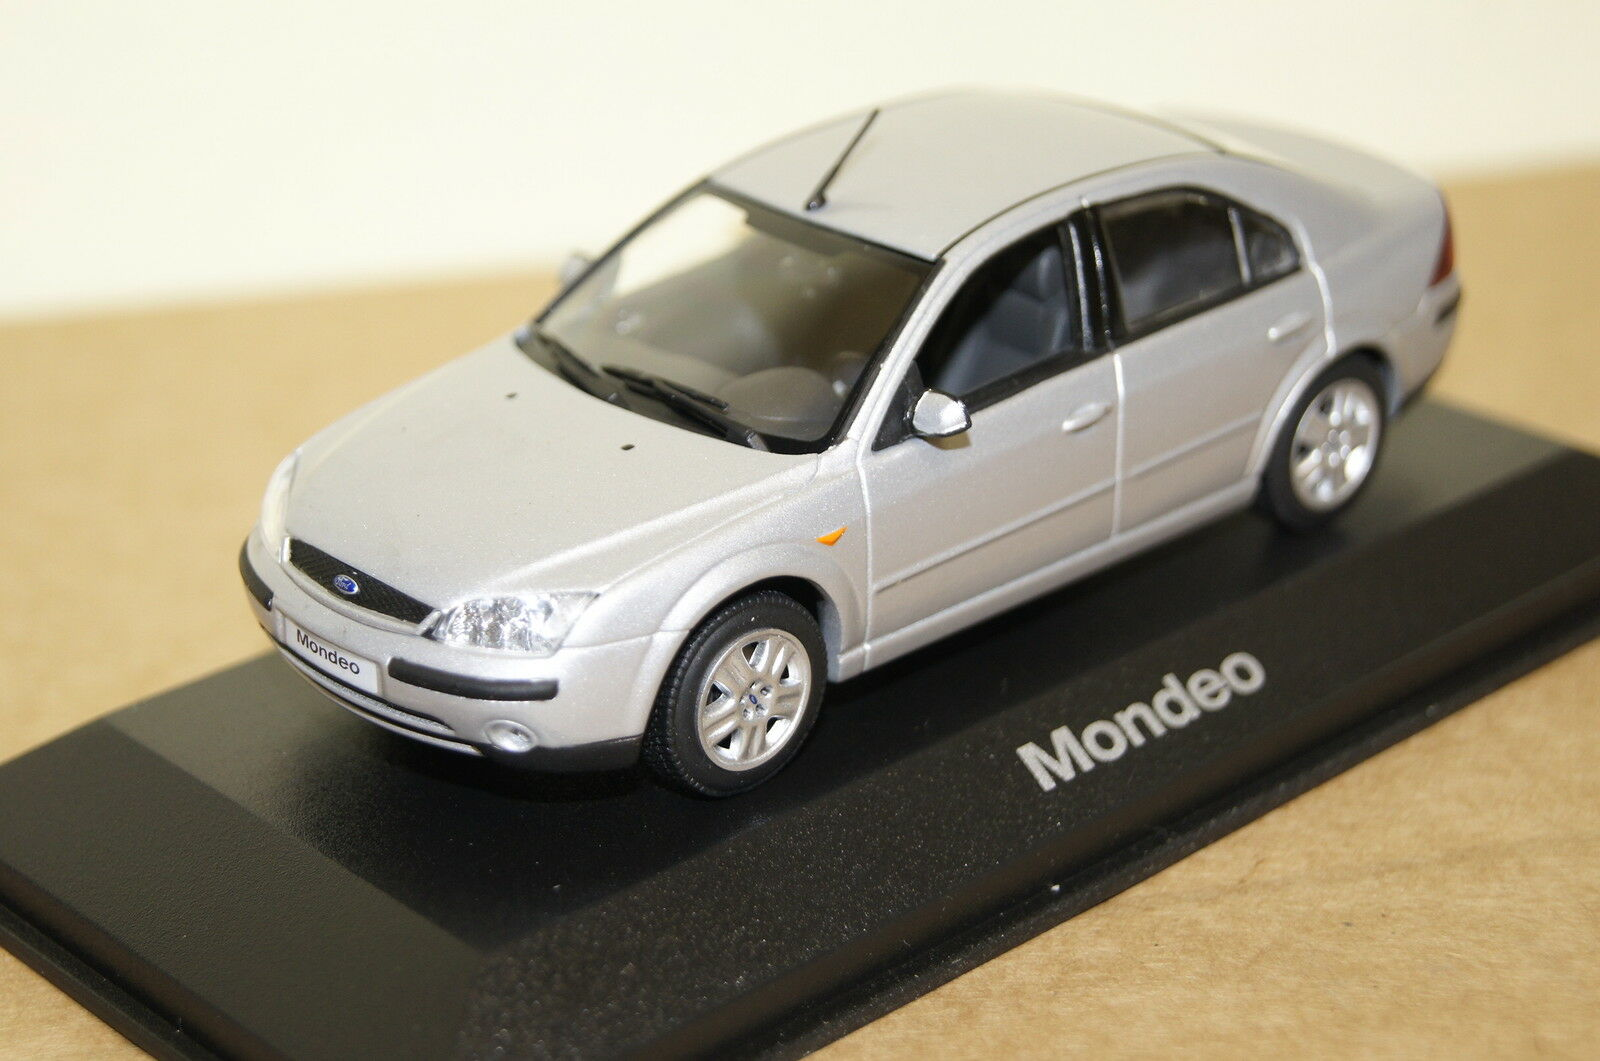 Ford Mondeo argent 1 43 Ford Minichamps Neuf  OVP